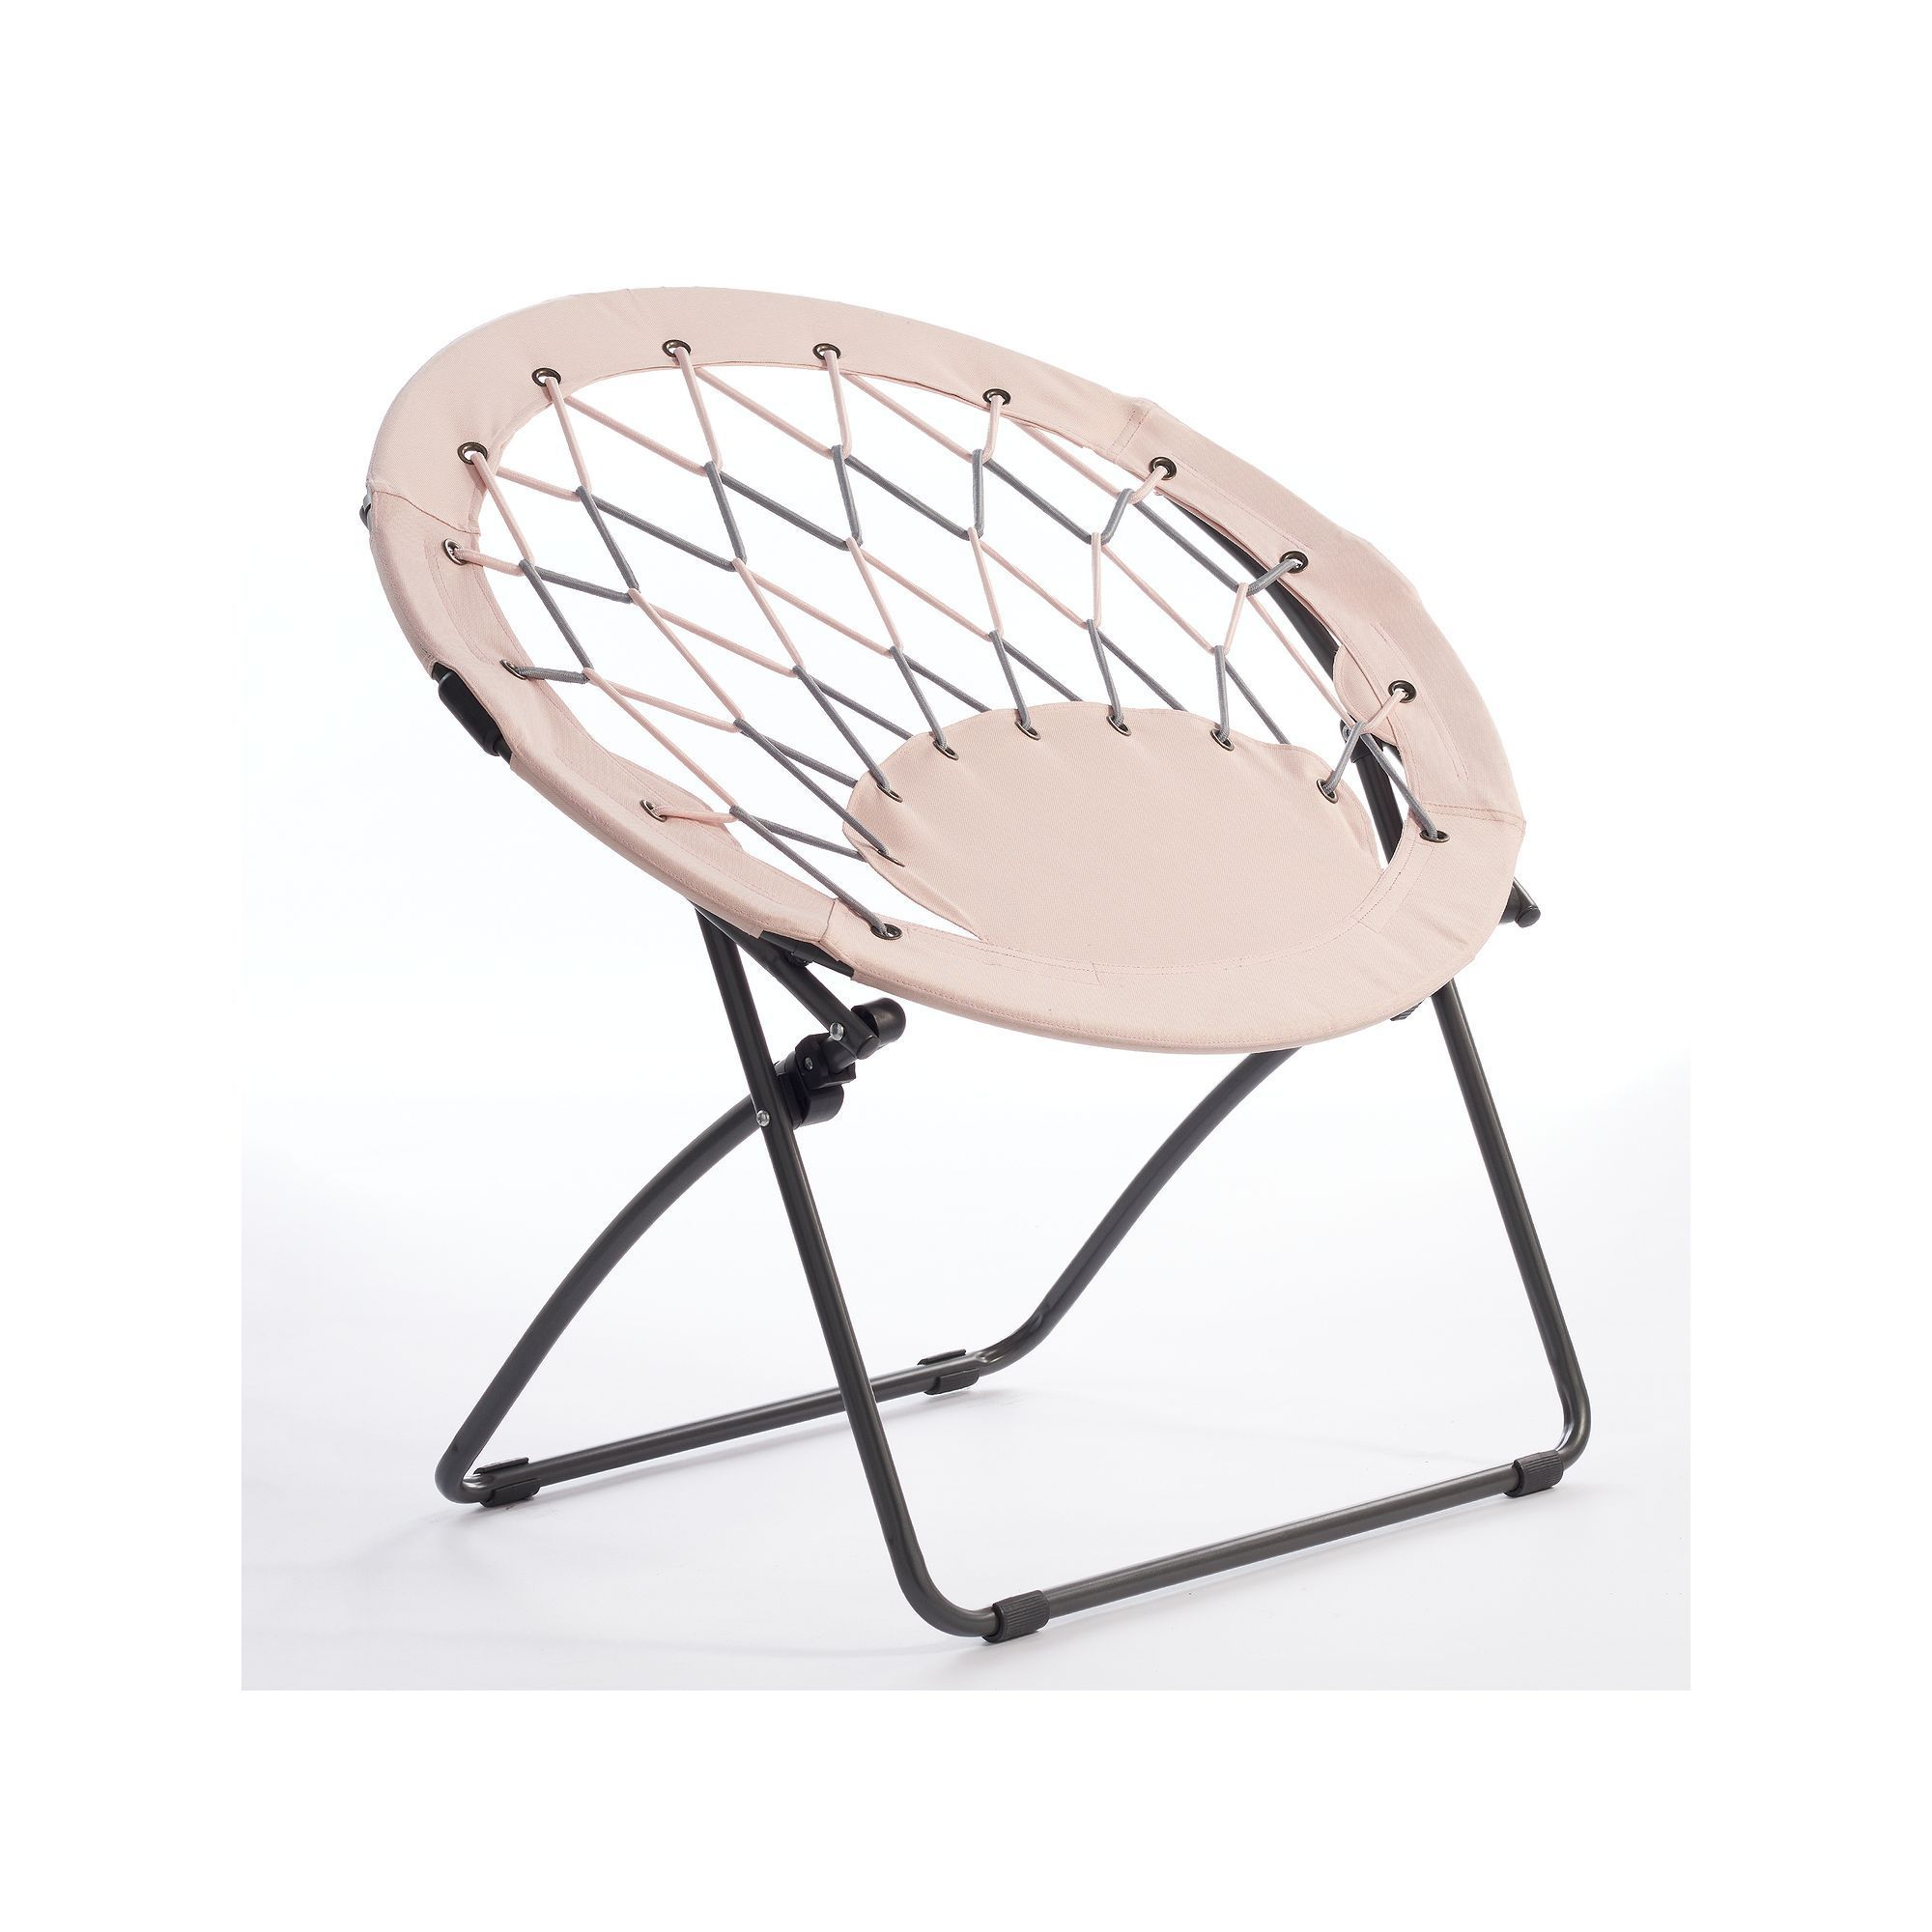 Sensational Simple By Design Circle Bungee Chair Products Bungee Caraccident5 Cool Chair Designs And Ideas Caraccident5Info